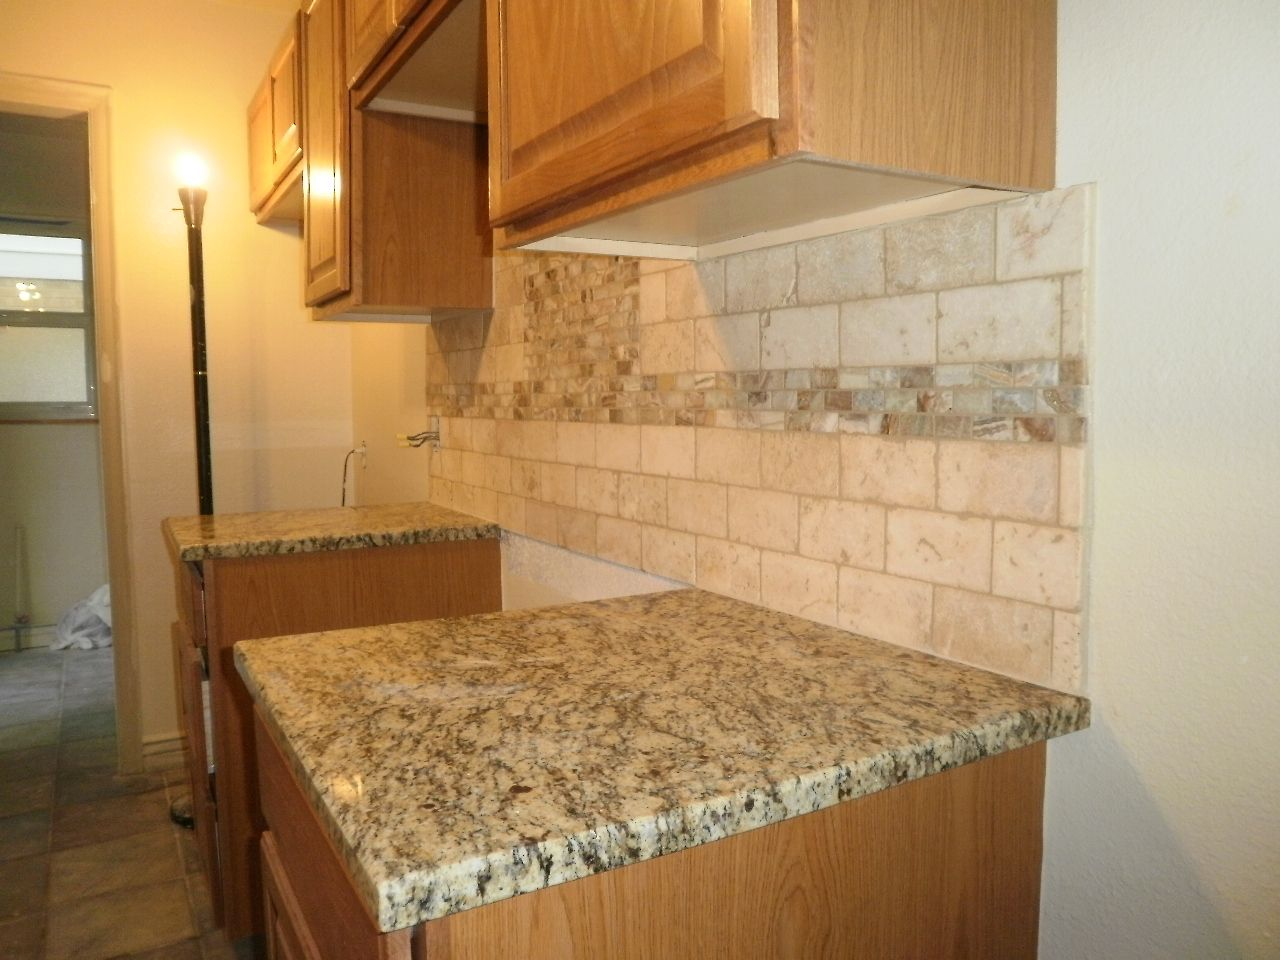 Travertine Tile Backsplash Backsplash Just